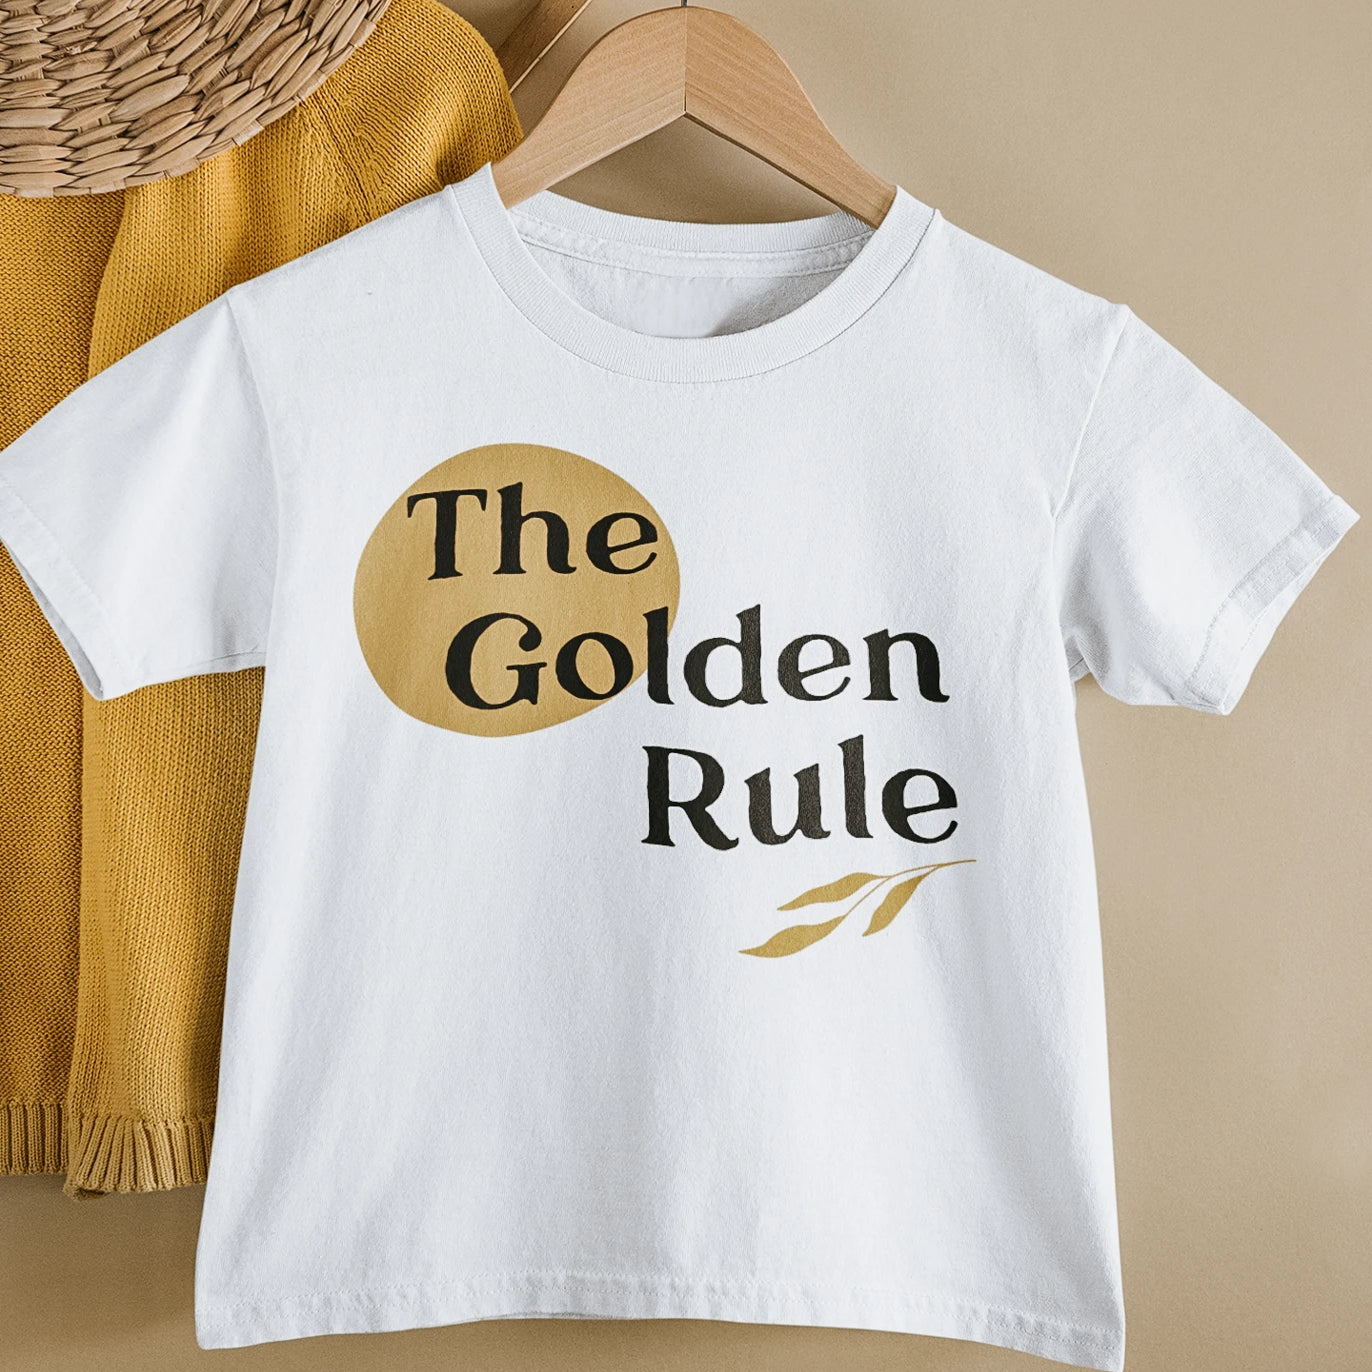 A white tee shirt that says the golden rule on it